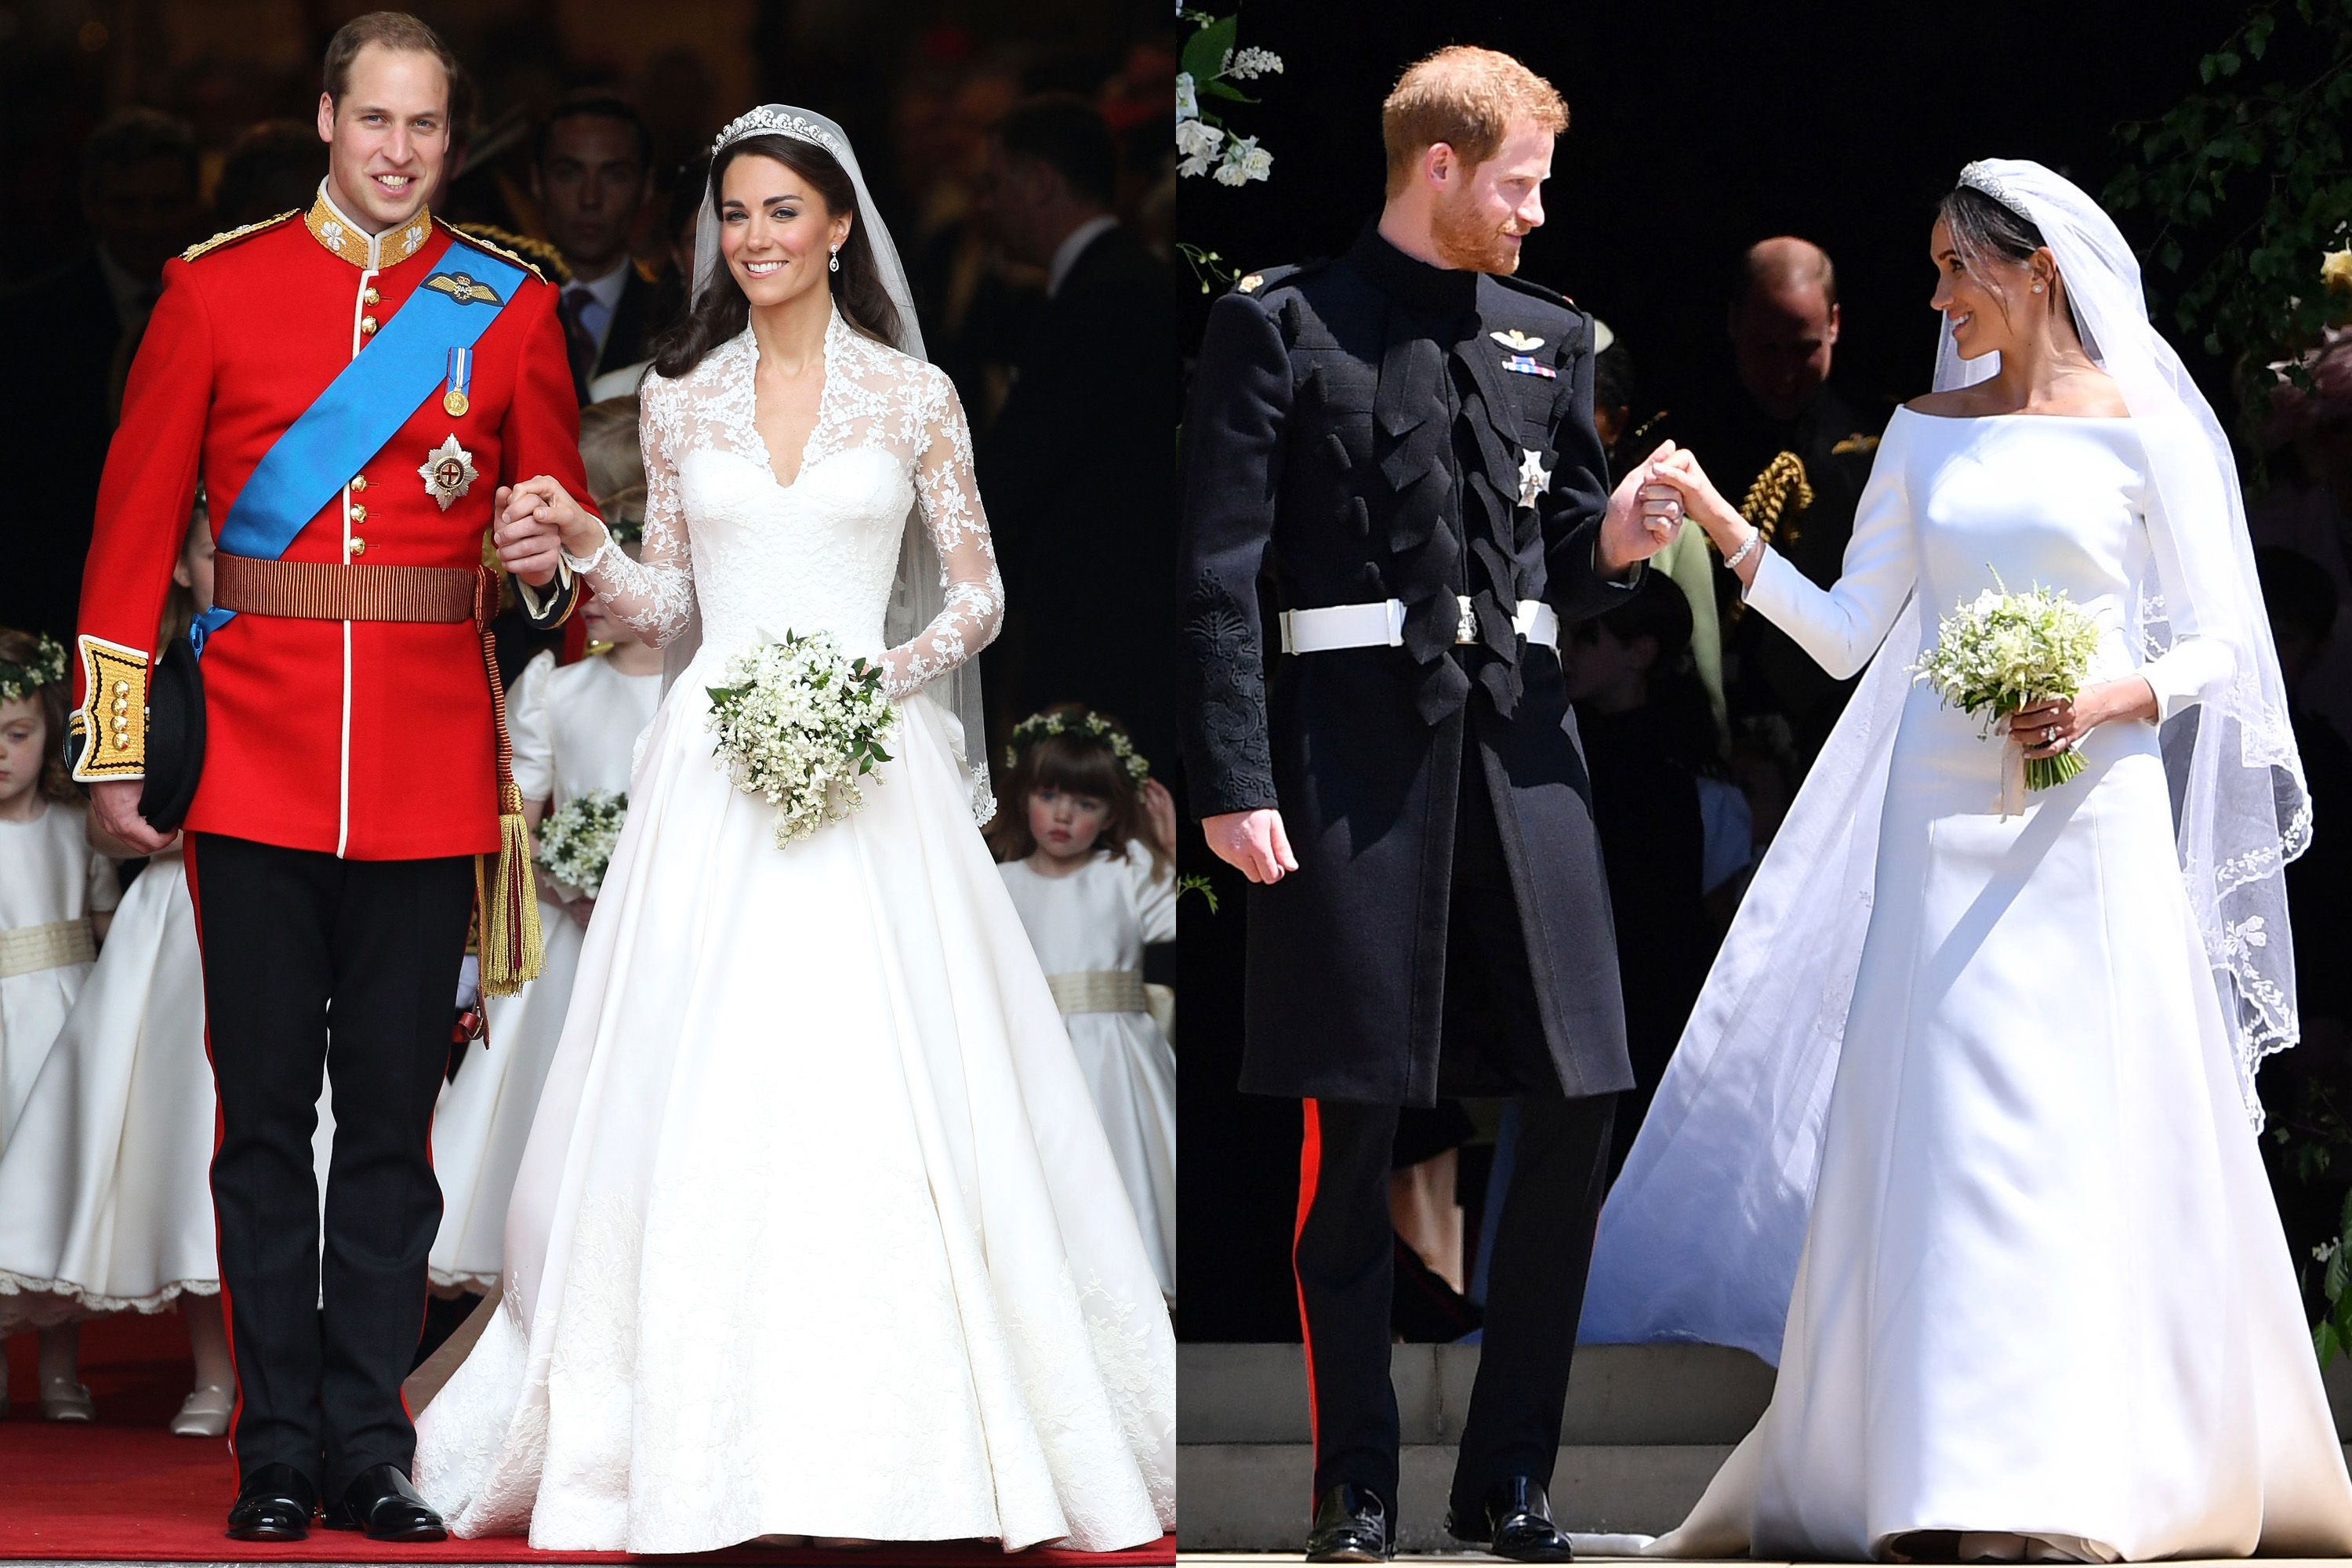 meghan markle's royal wedding dress compared to kate